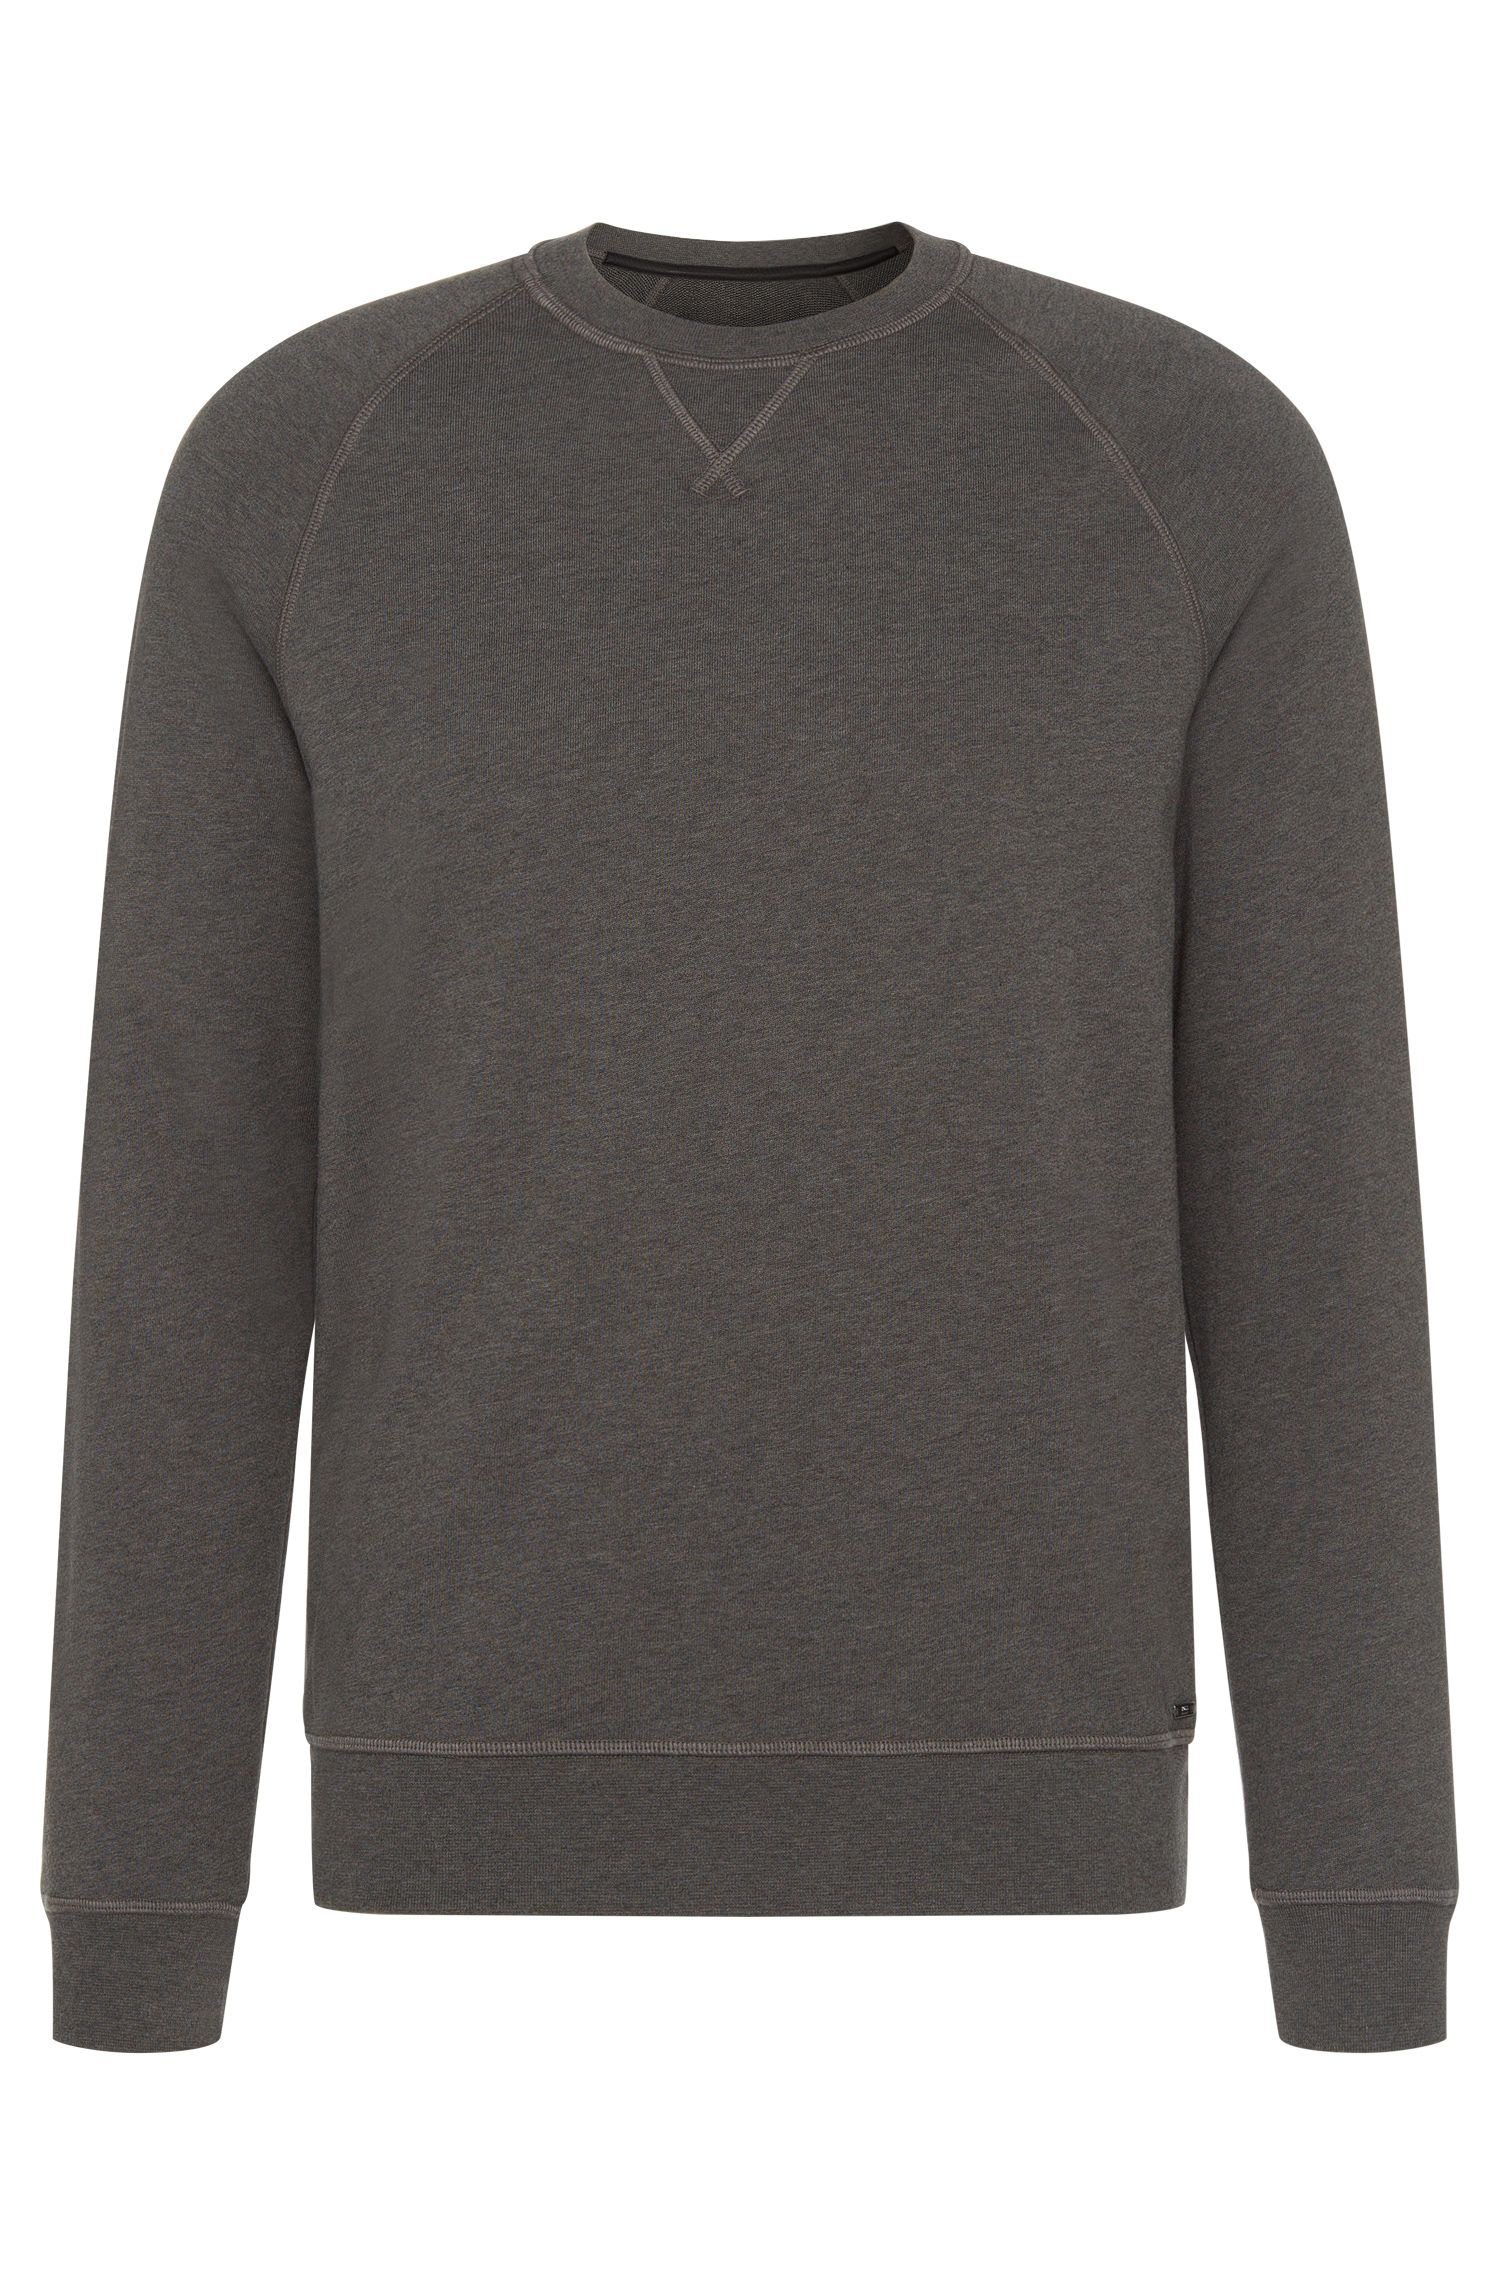 Mottled slim-fit sweatshirt in cotton with raglan sleeves: 'Skubic 18-WS'